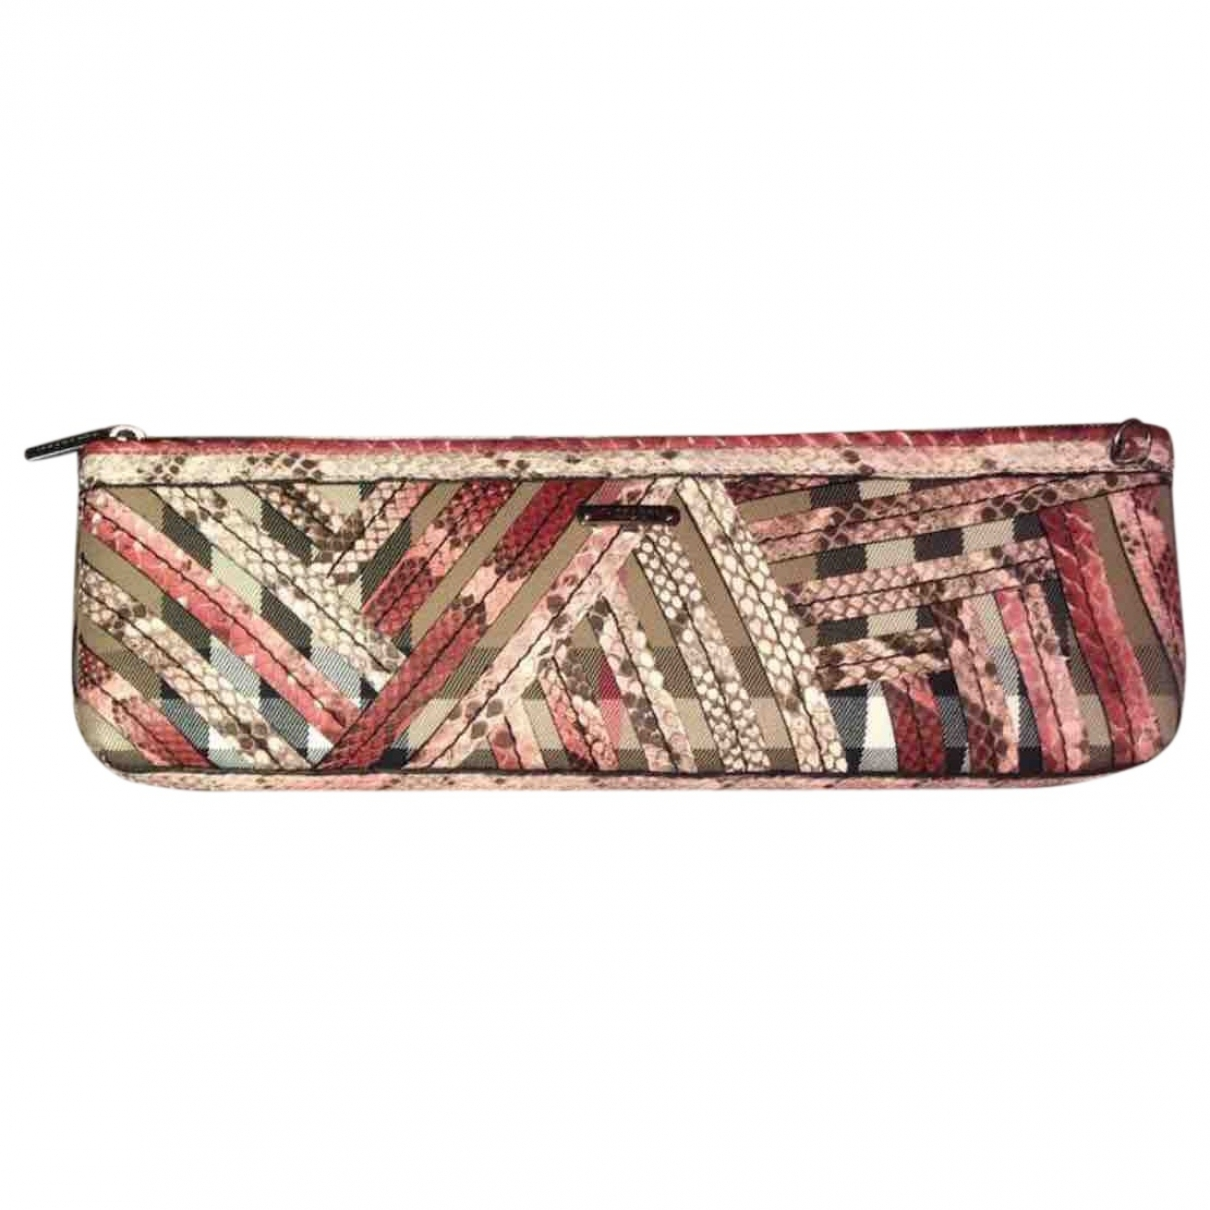 Burberry \N Pink Leather Clutch bag for Women \N